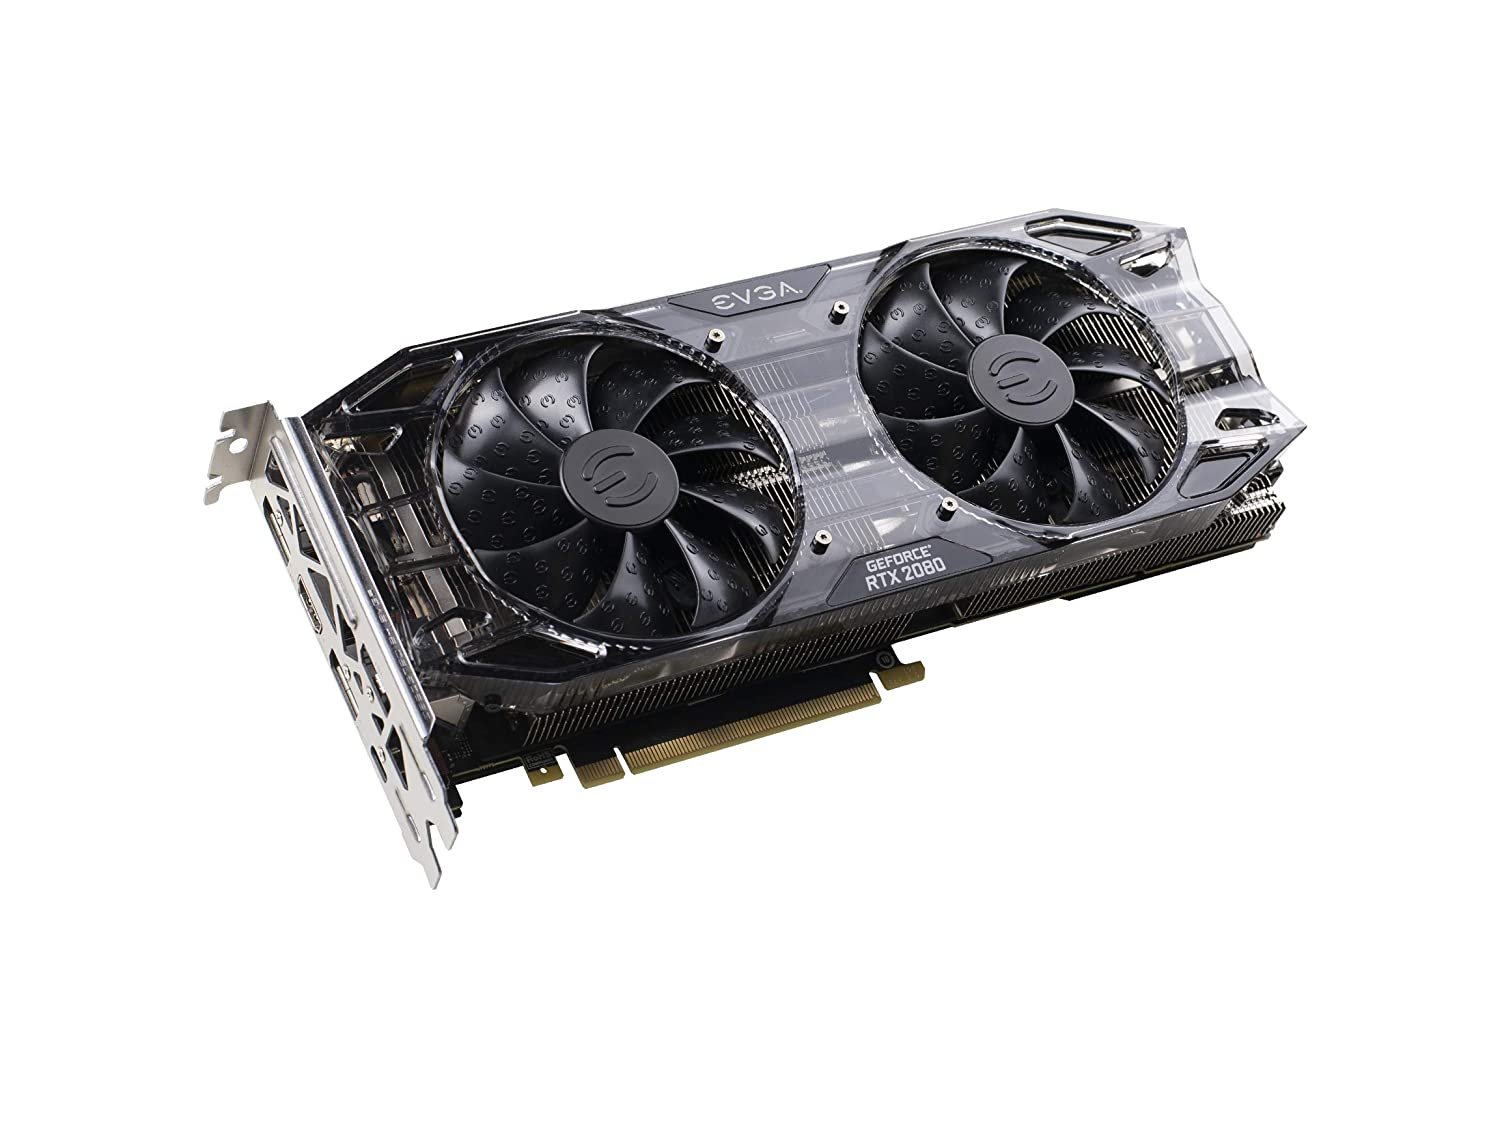 EVGA 08G-P4-2081-KR GeForce RTX 2080 Gaming 8GB GDDR6 Dual HDB Graphics  Card, Black Edition